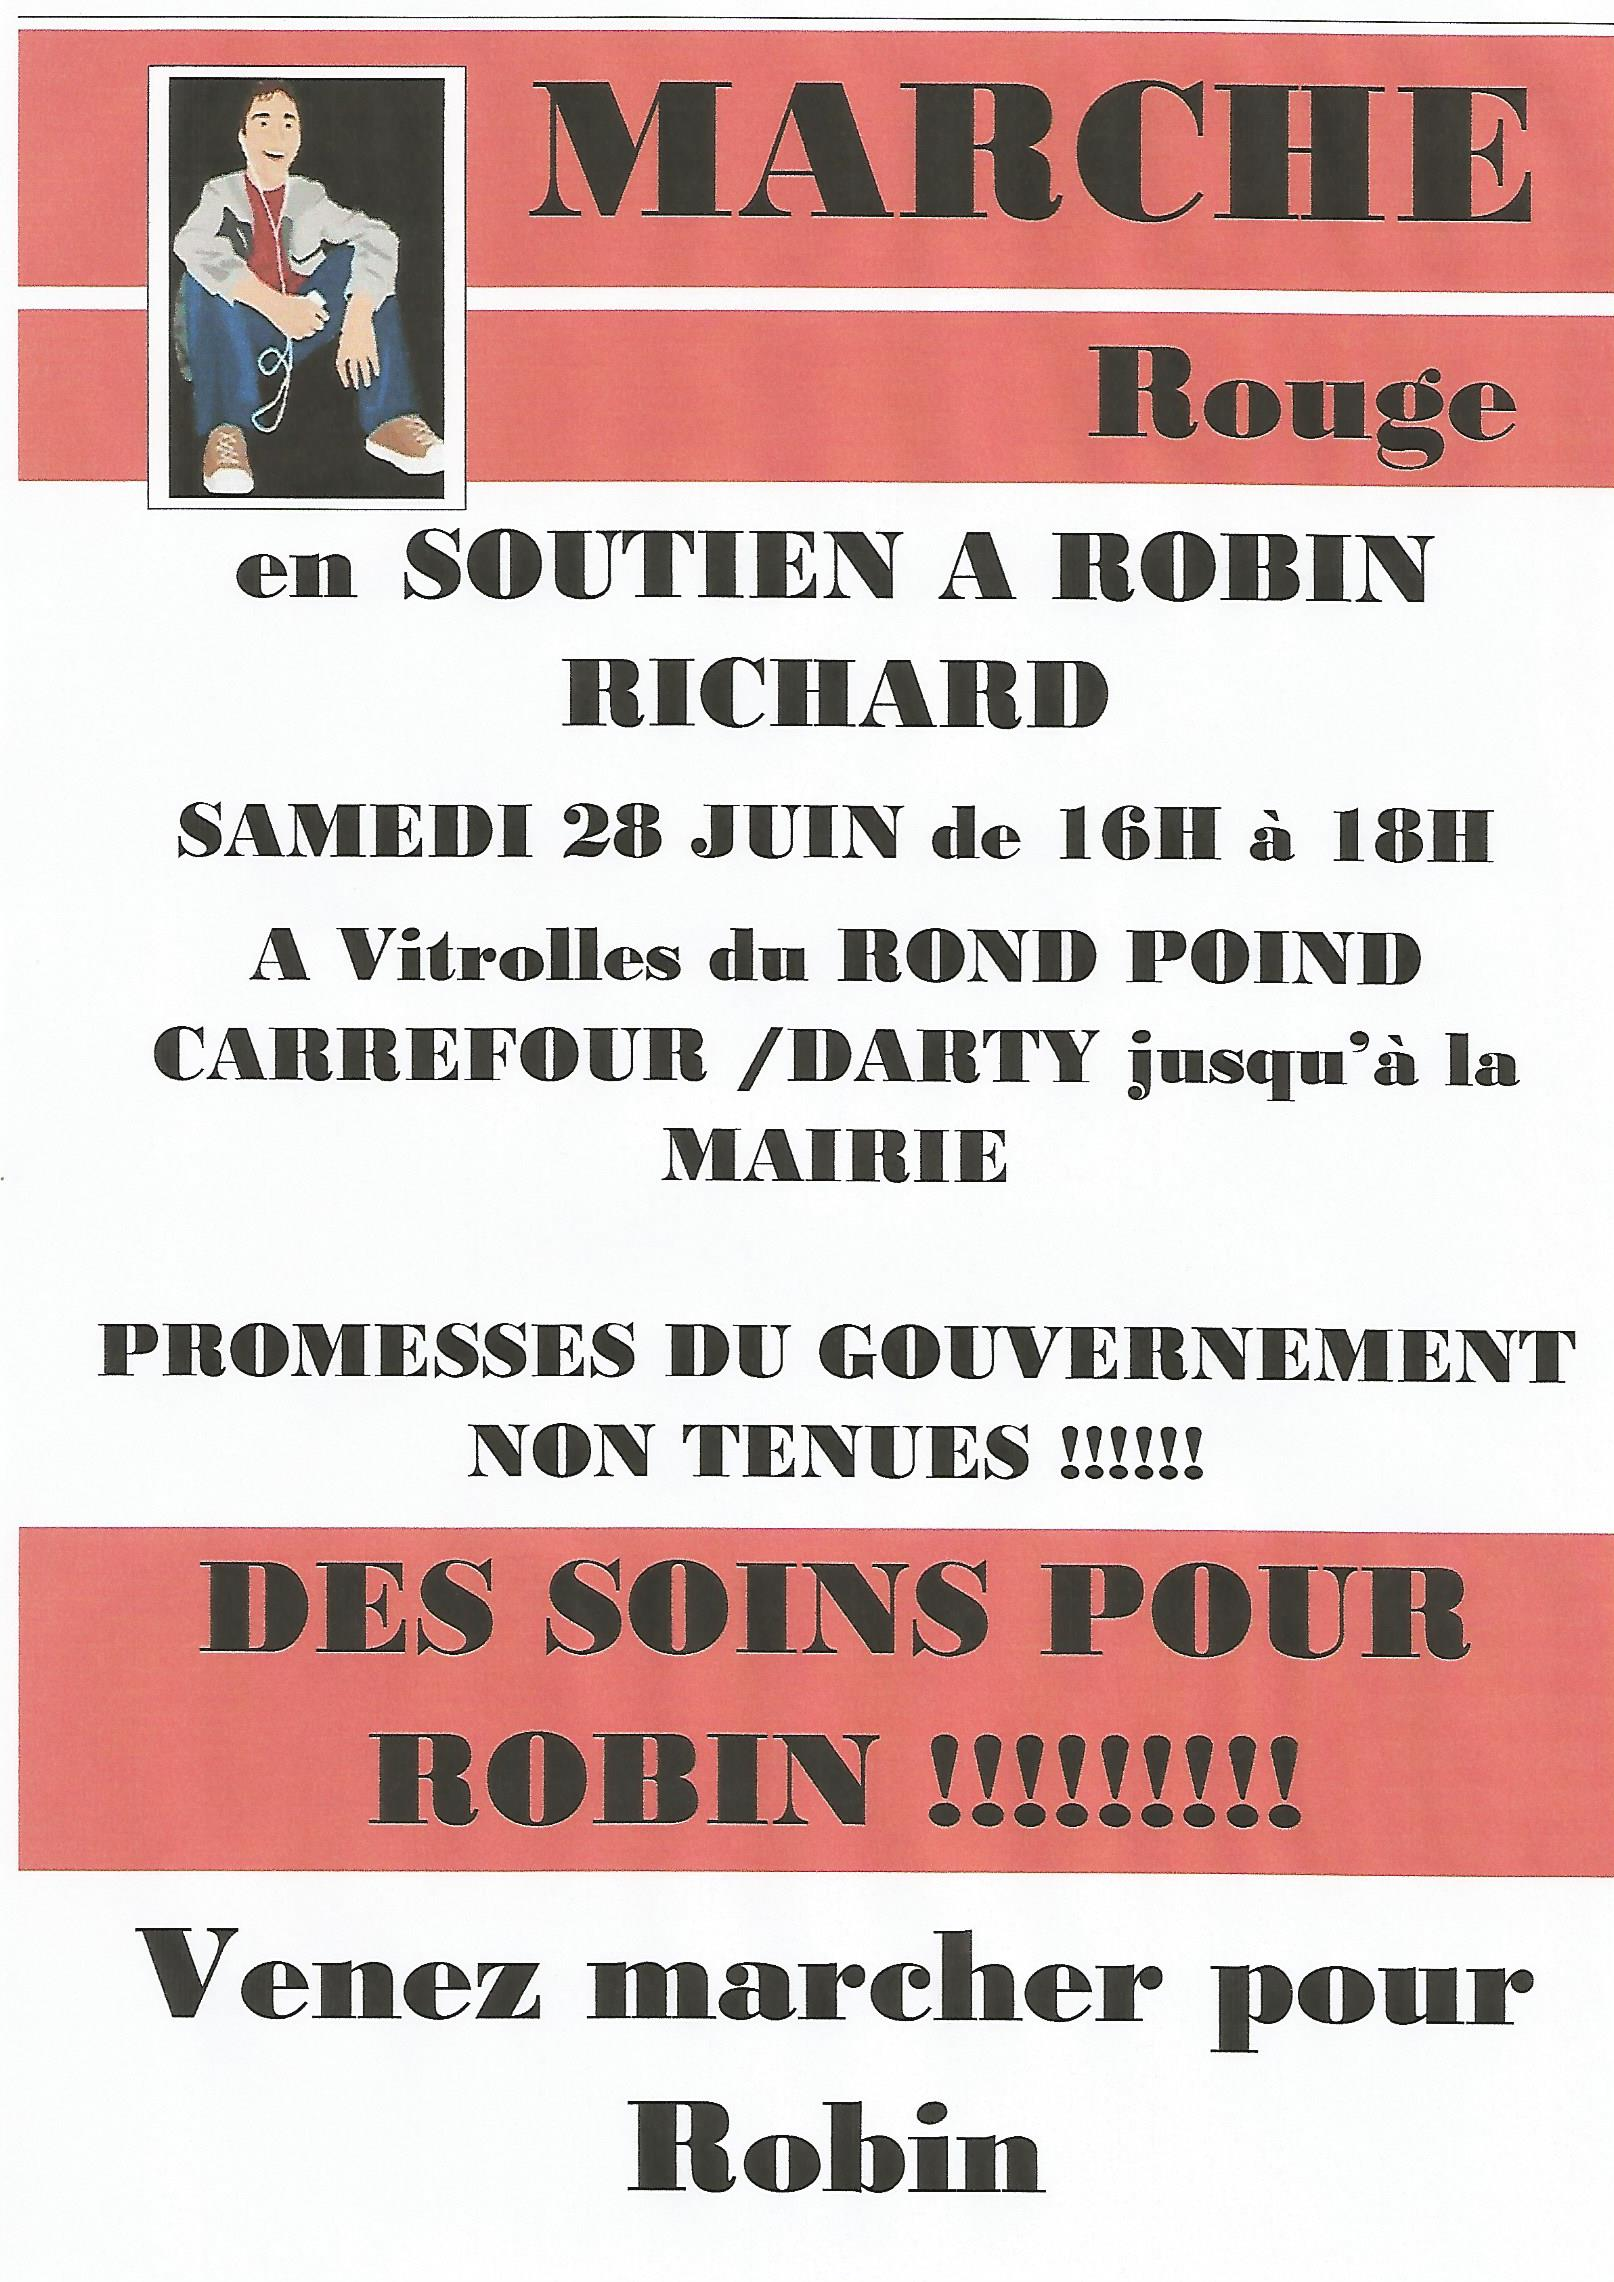 affiche_marche_rouge1.jpg